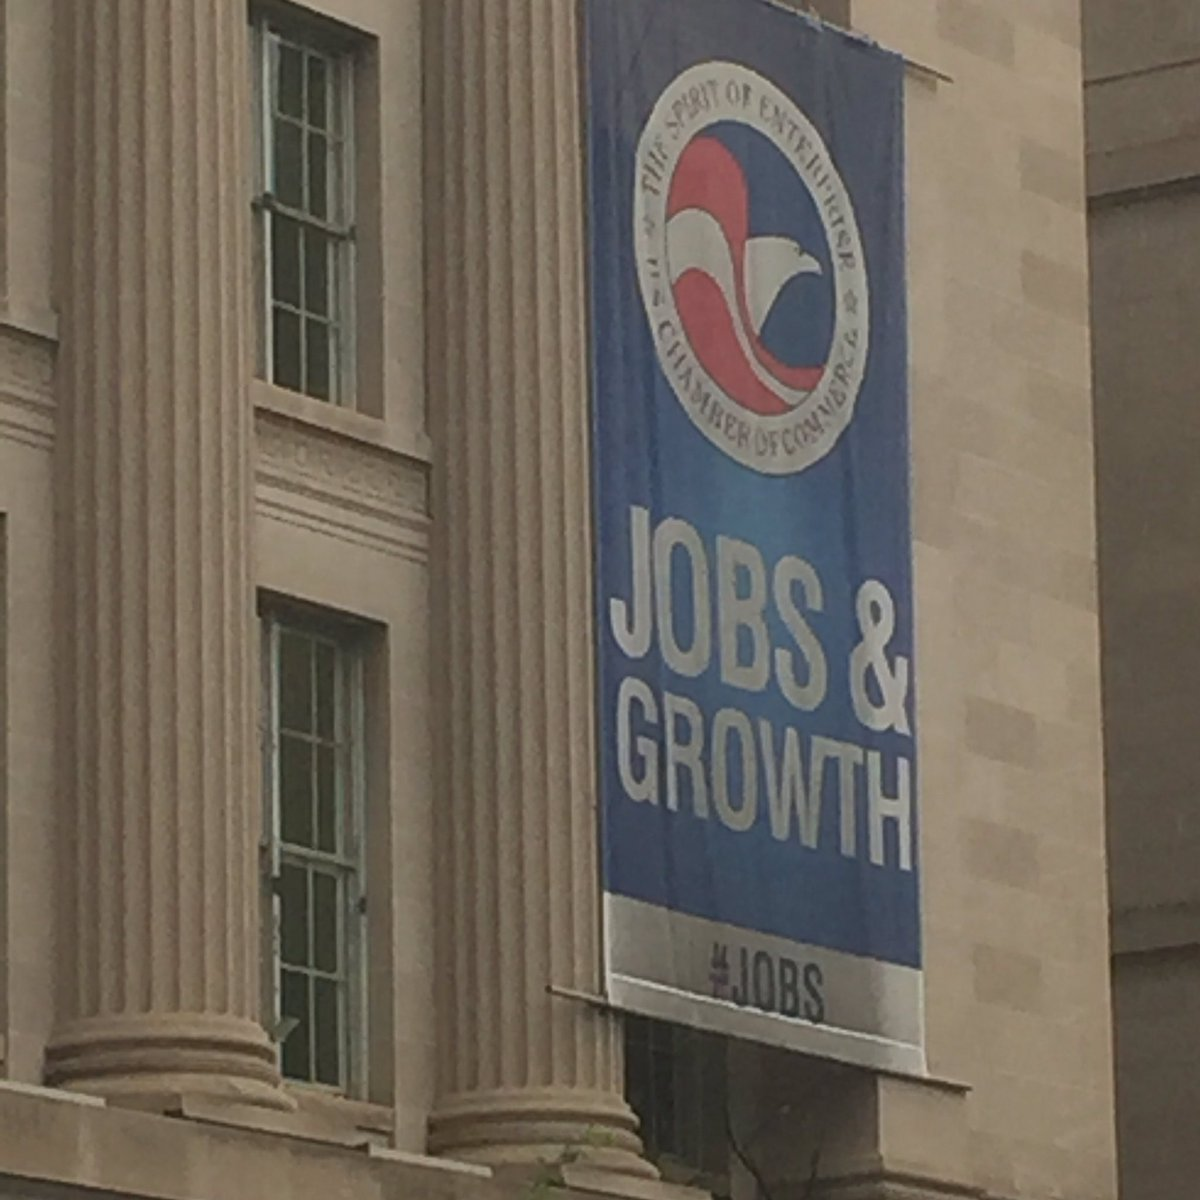 In DC I walked past this tired faded old banner with the tired faded old slogan it reminded me of something #auspol https://t.co/r2mTagNsb9